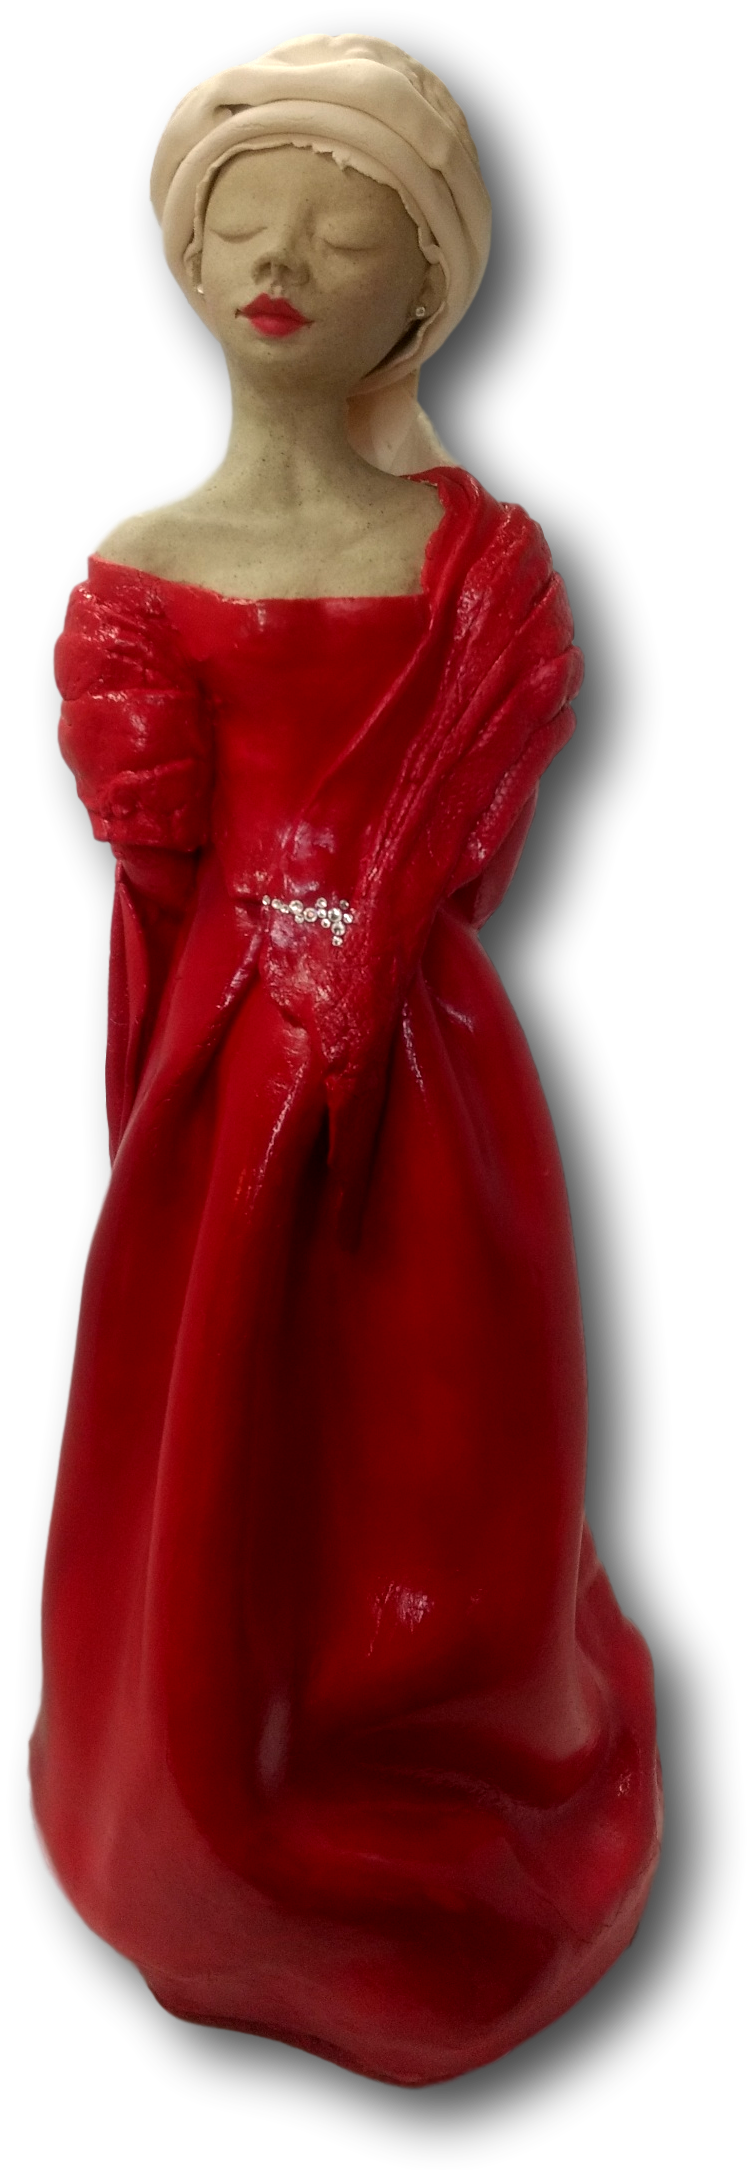 Red Lady with Swarovski Crystals